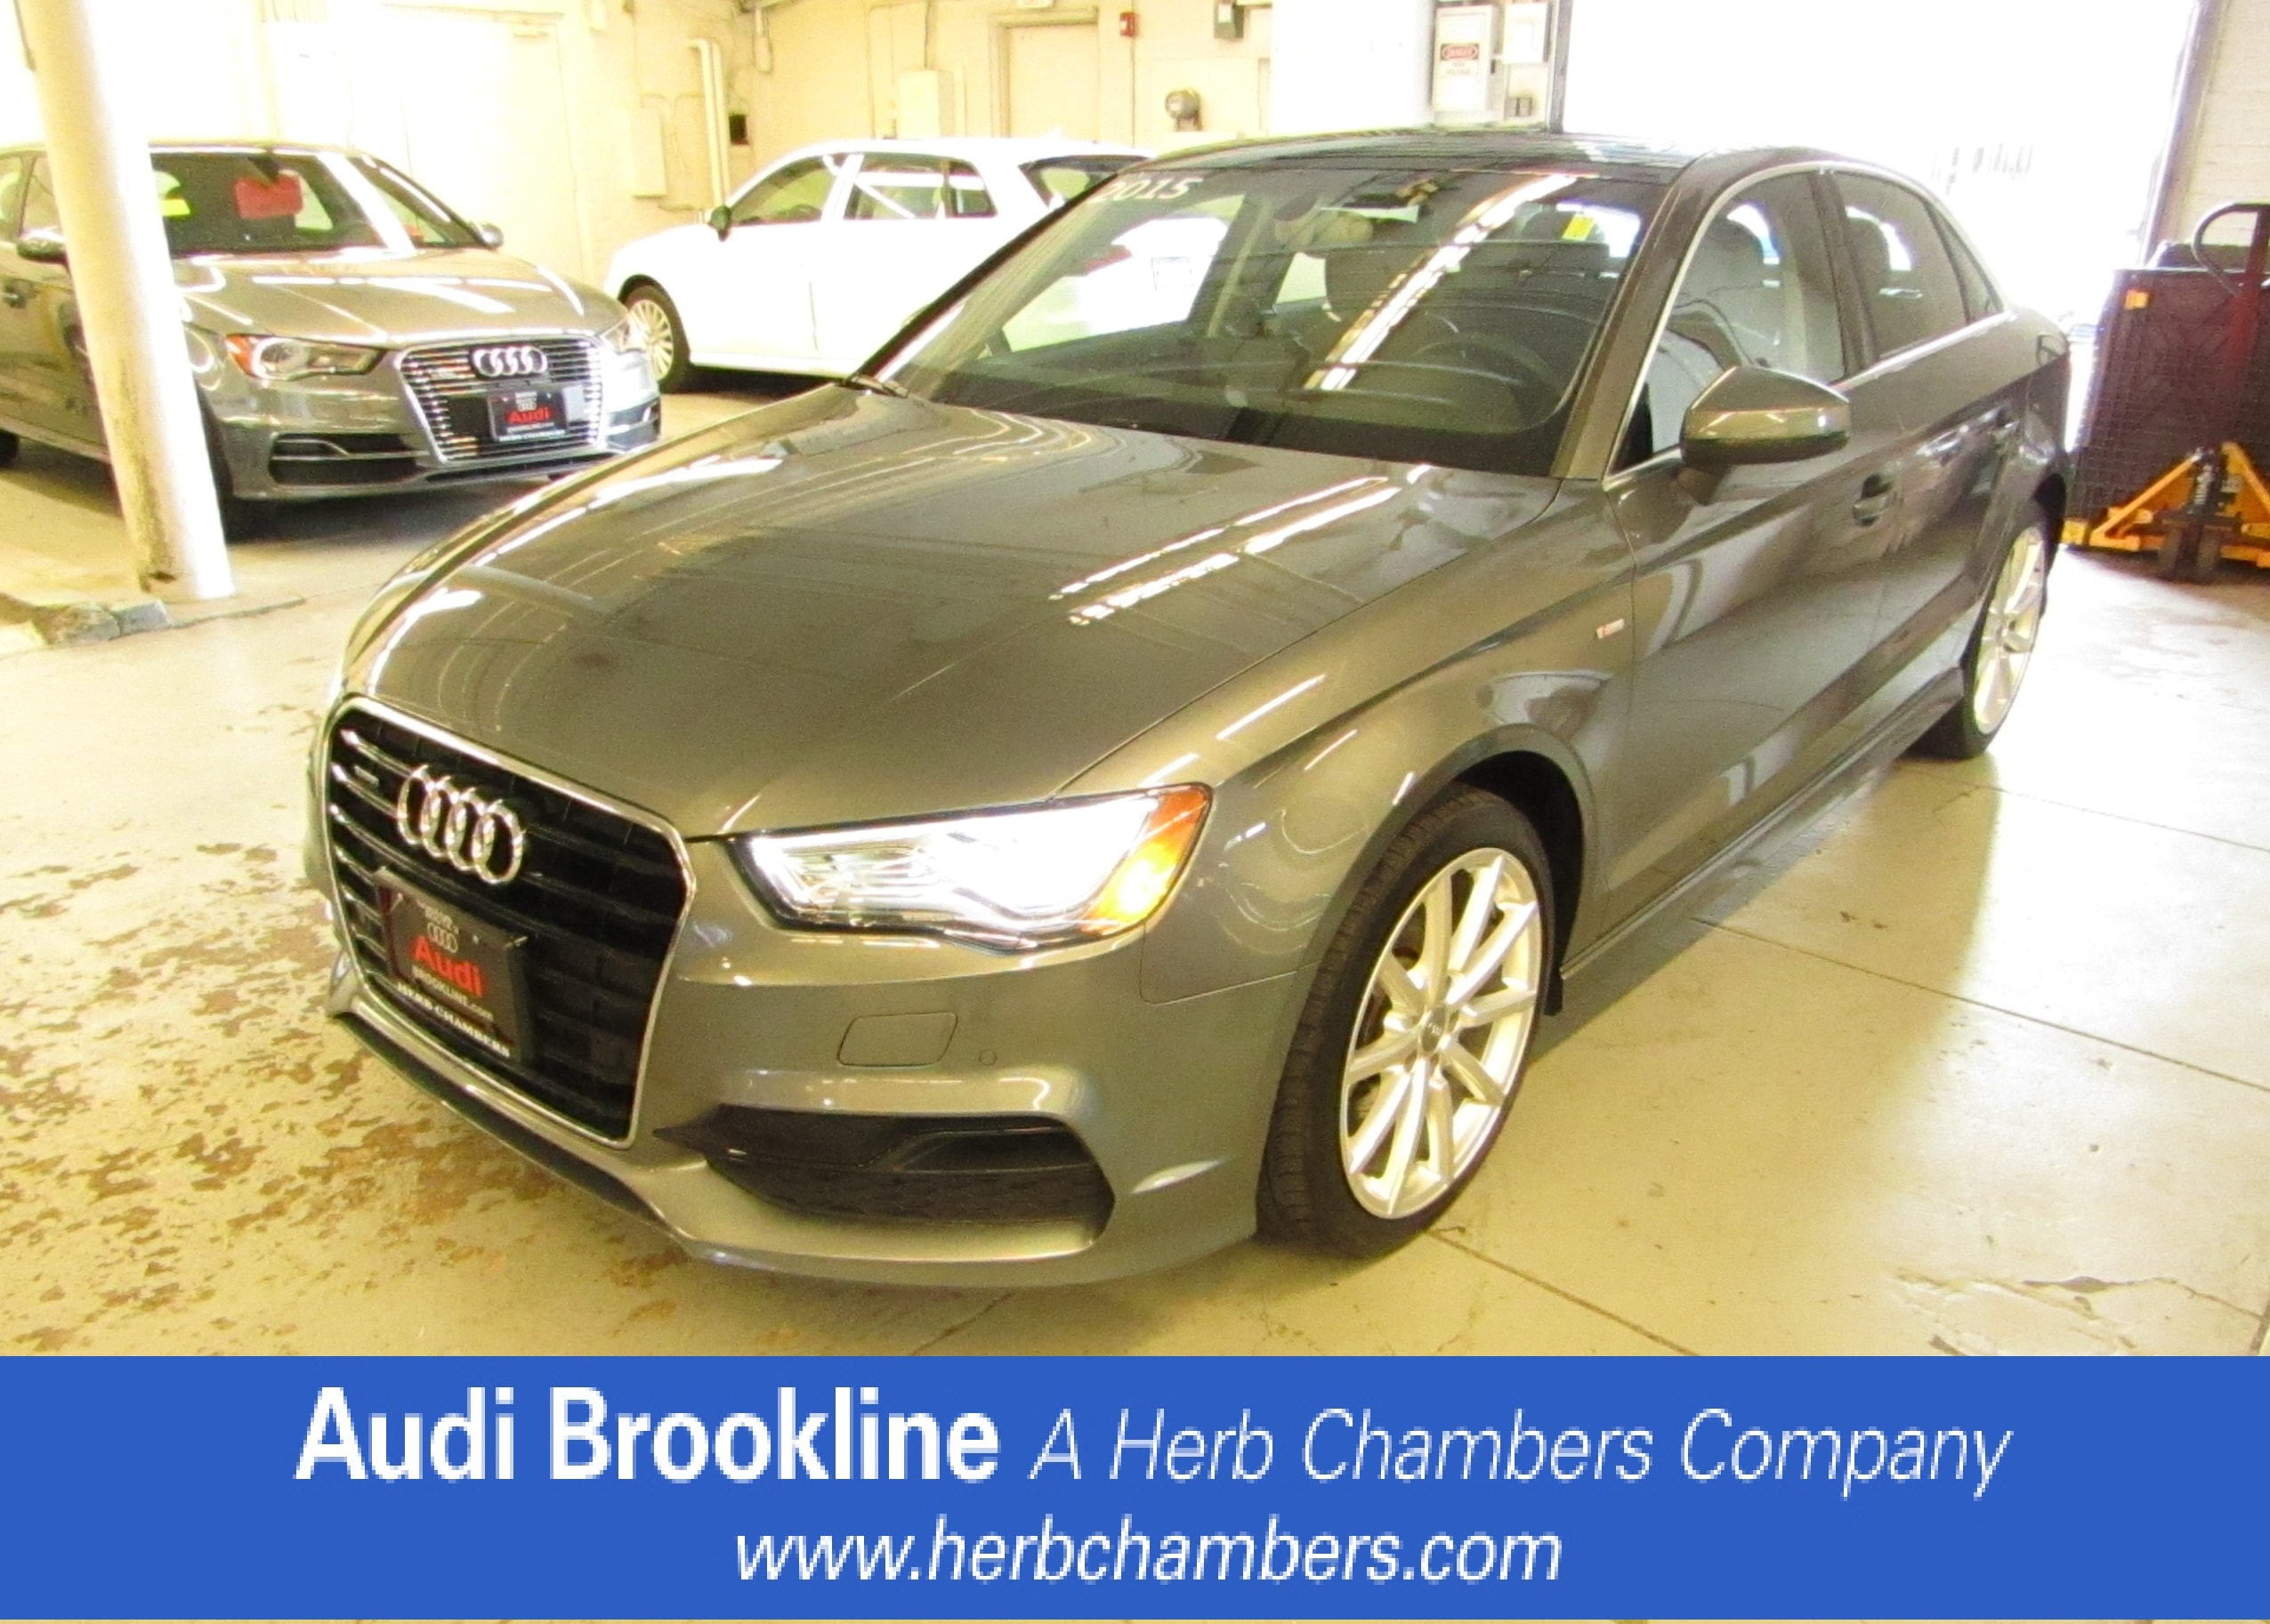 Certified Pre-Owned 2015 Audi A3 2.0T Prestige Car for sale in the Boston MA area